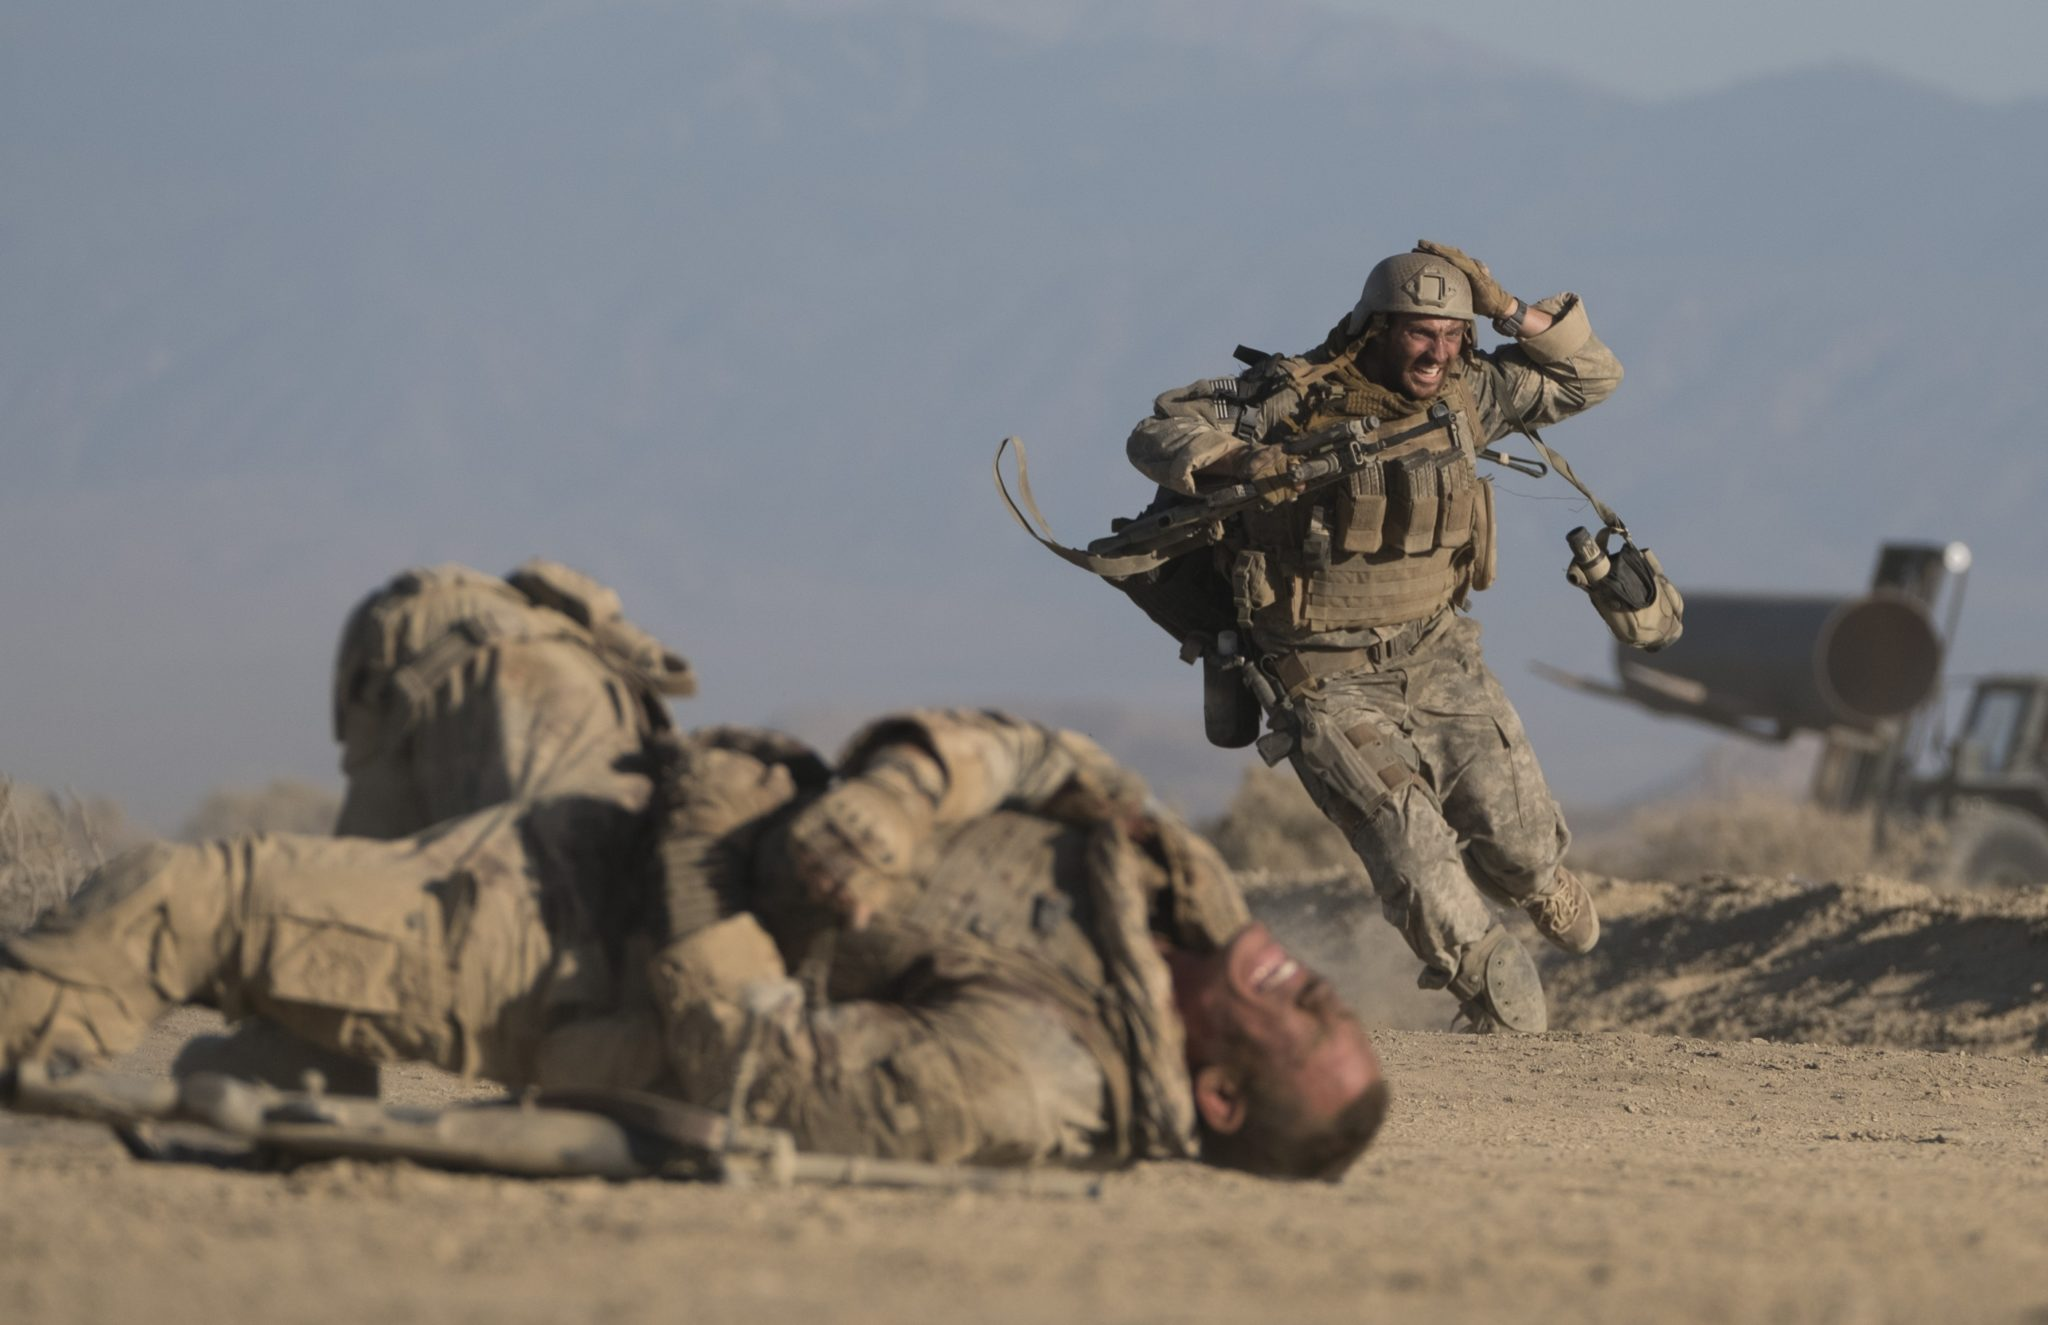 'The Wall' is a small film too focused to see the big picture